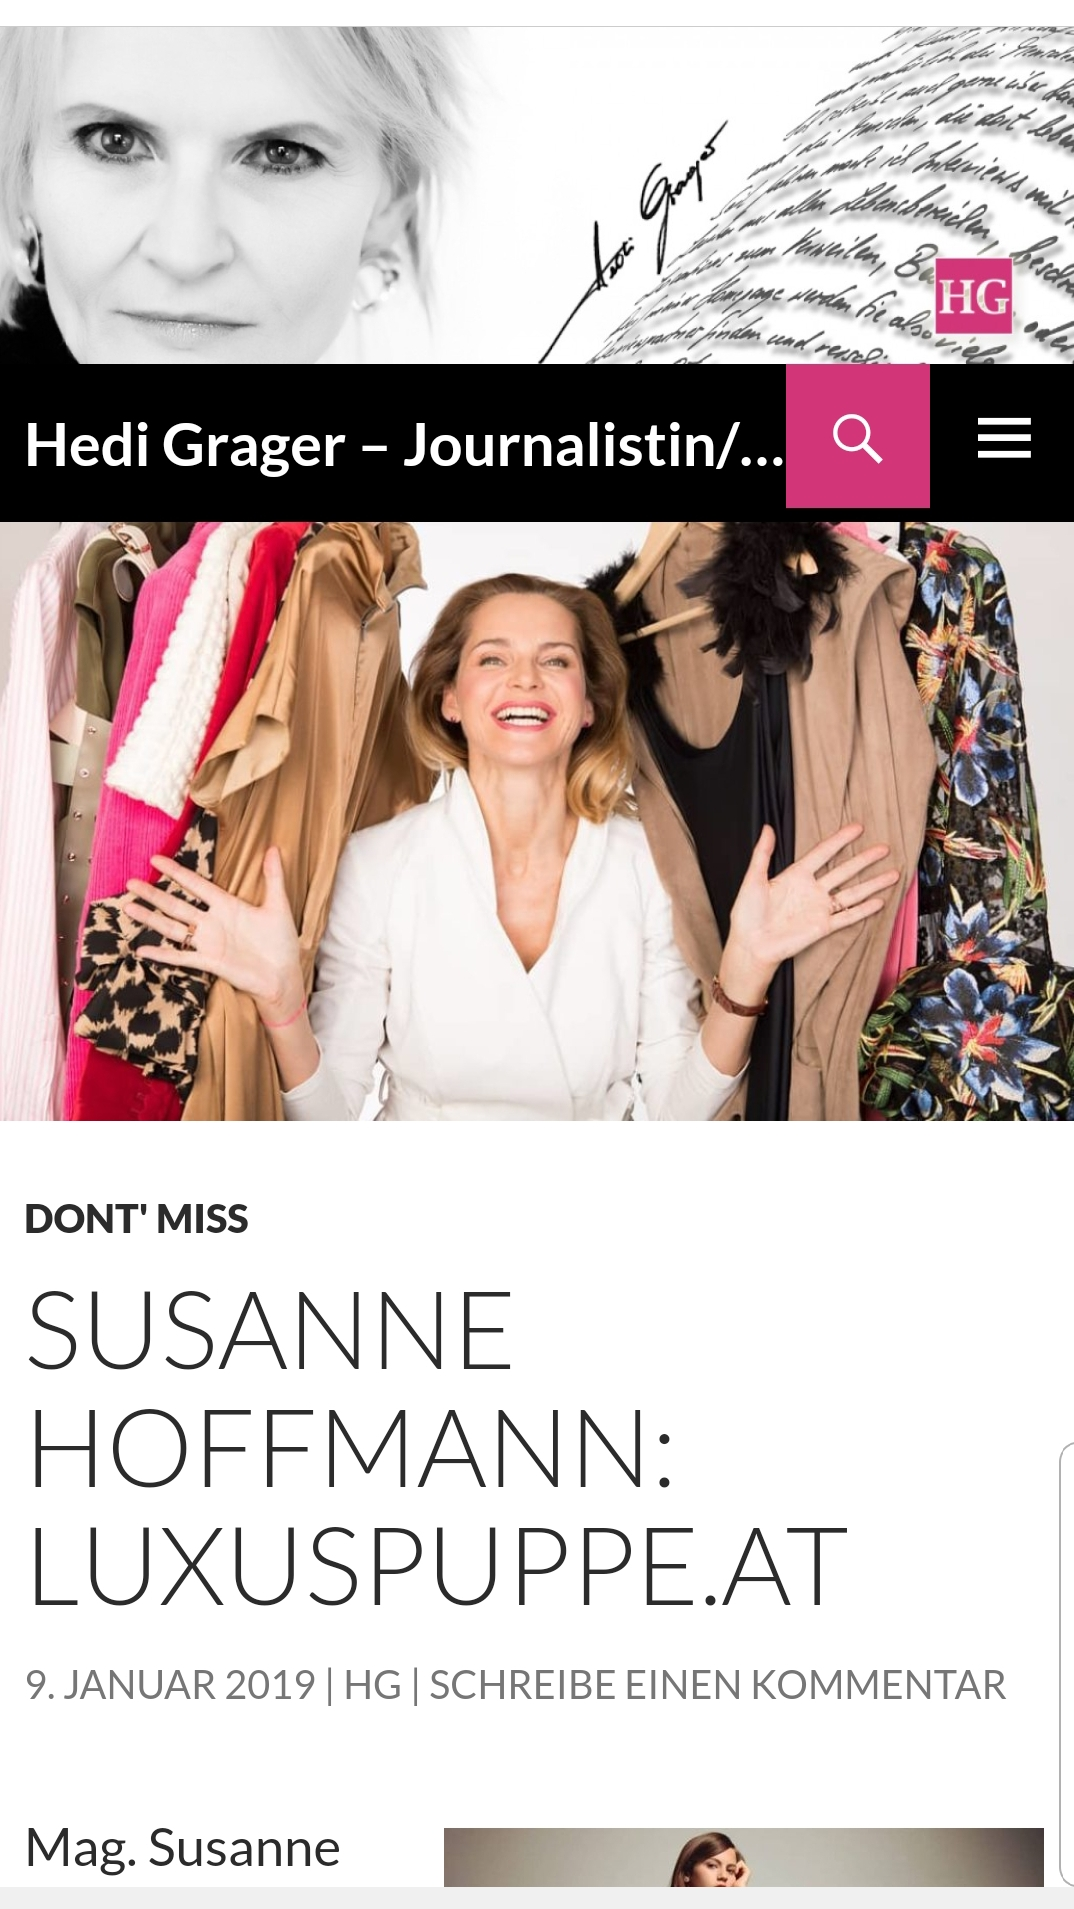 Interview mit Hedi Grager – Journalistin/Bloggerin